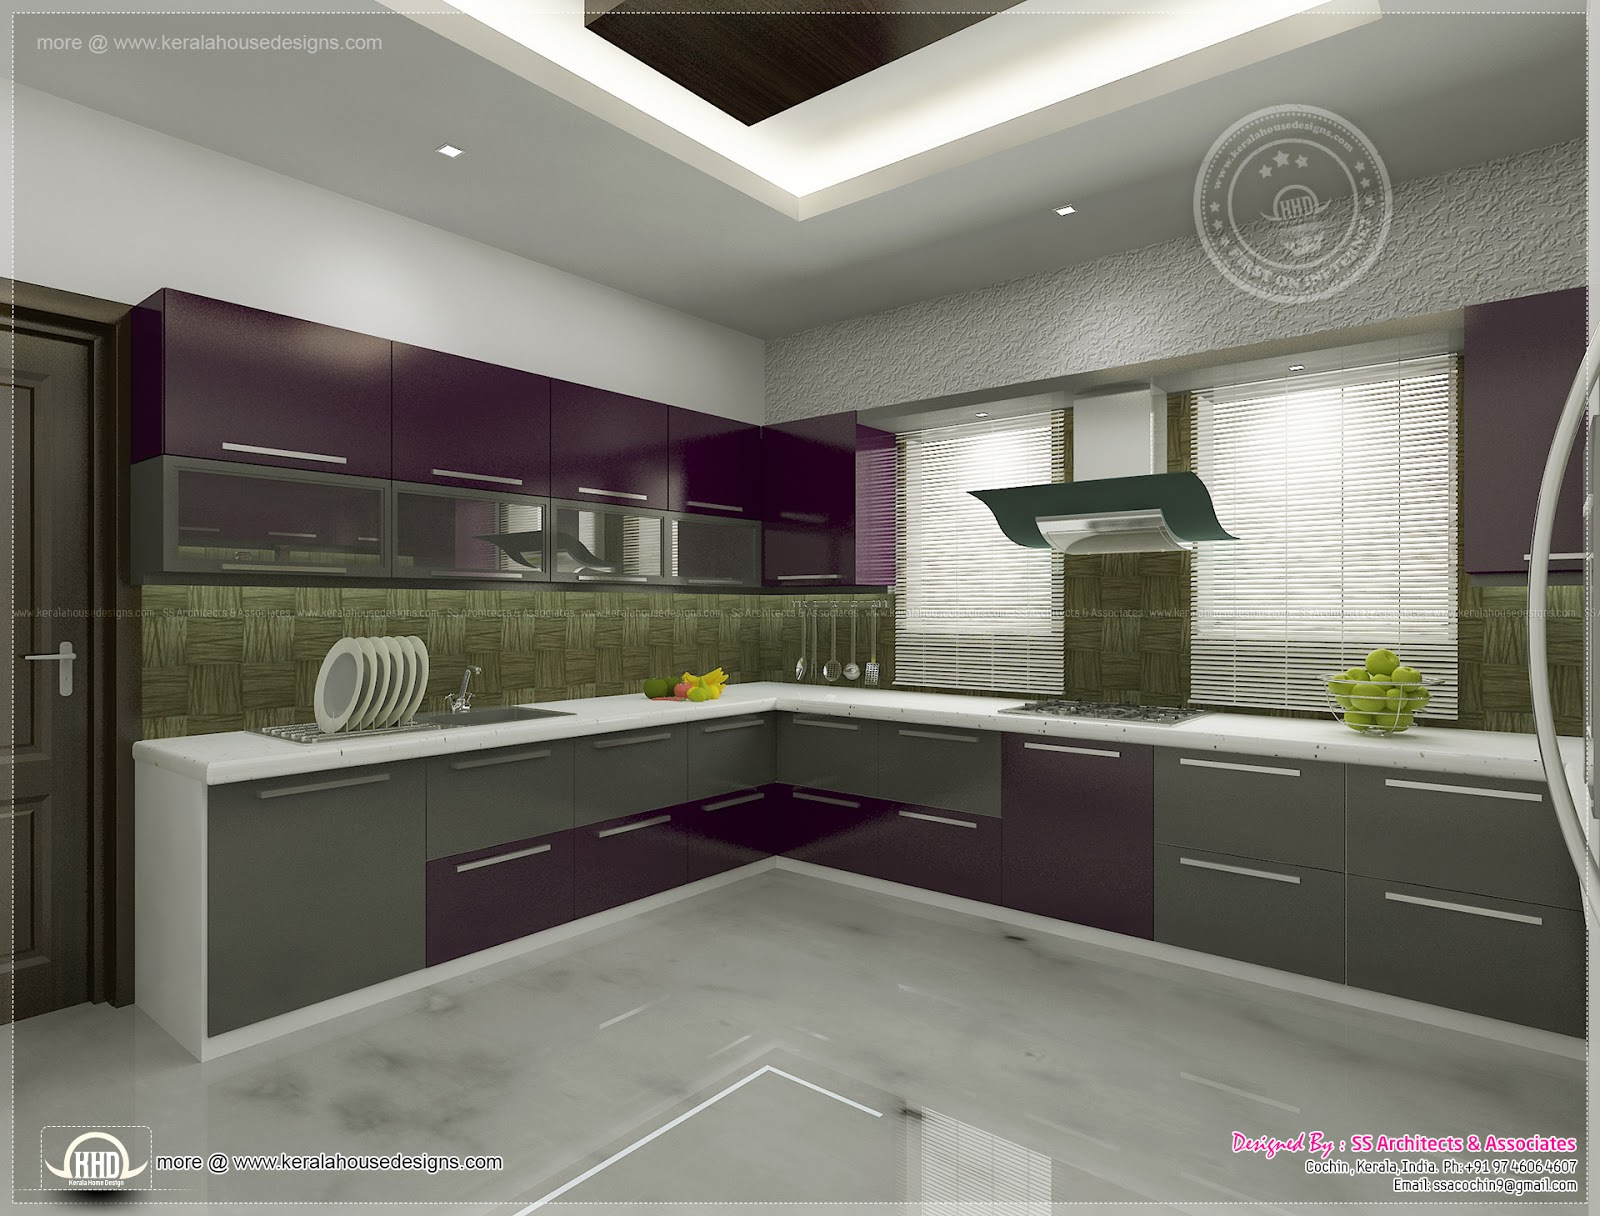 Kitchen interior views by ss architects cochin kerala for Home design interior design